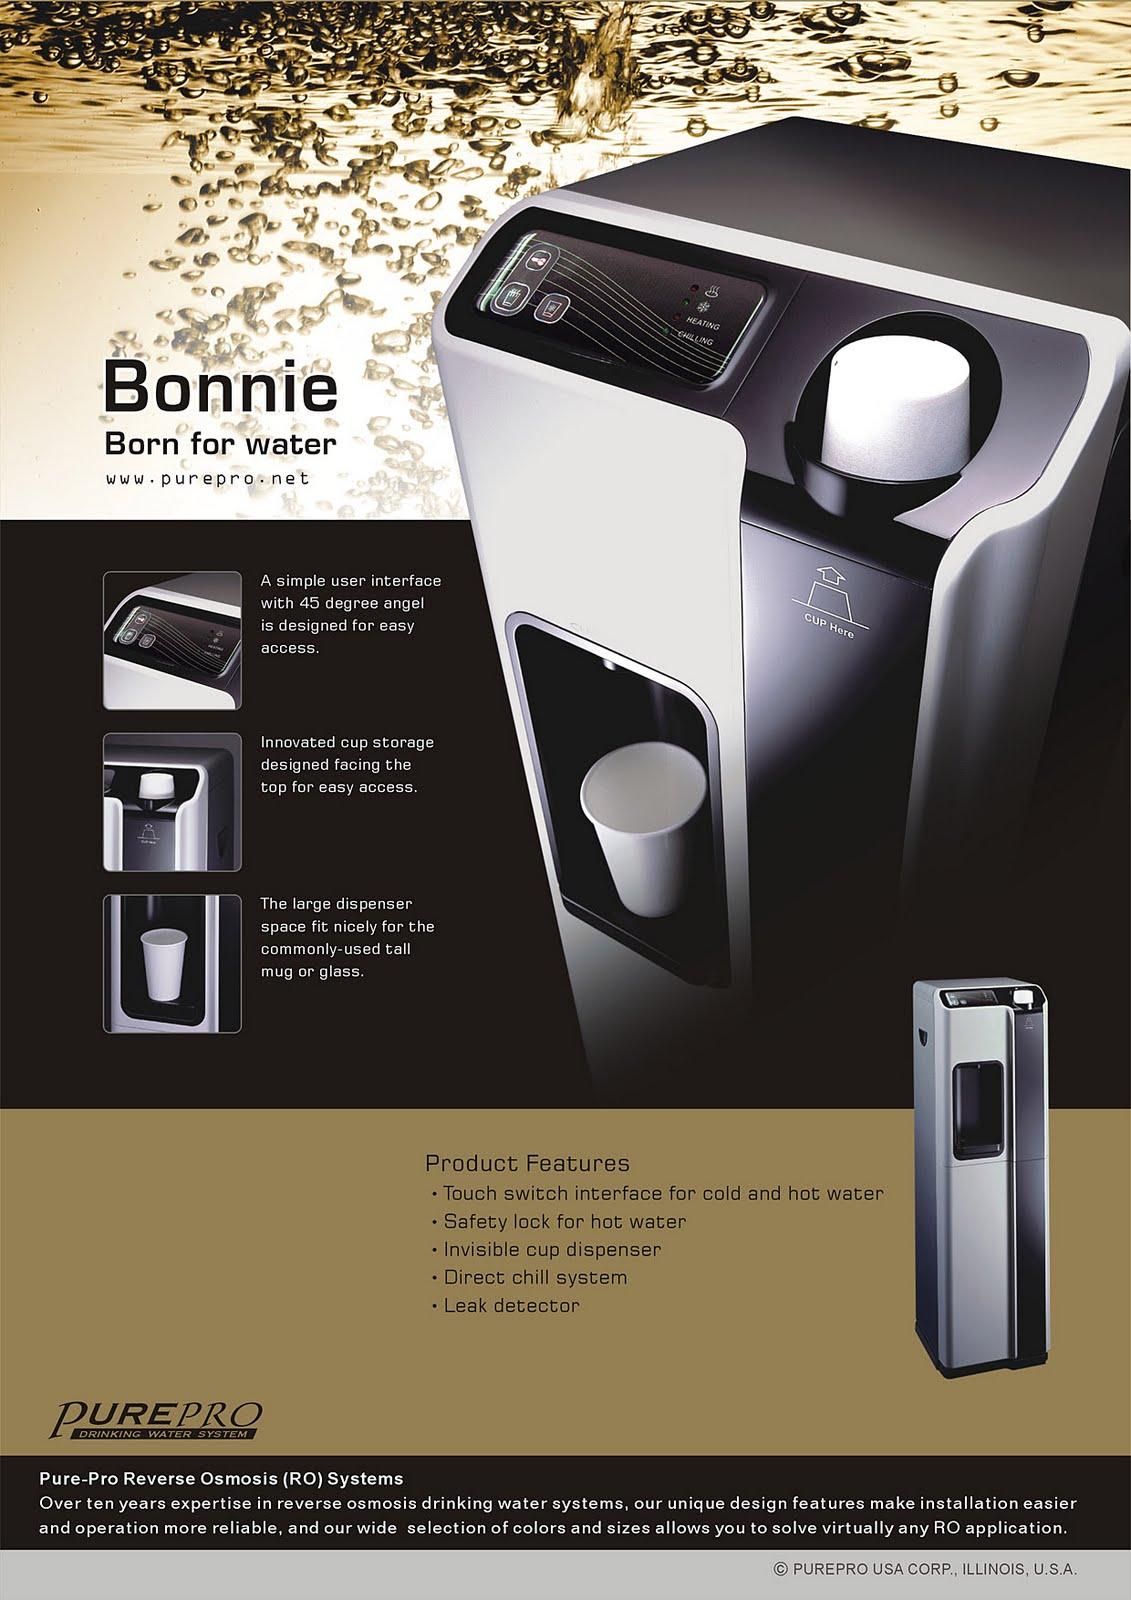 PurePro® Bonnie Reverse Osmosis Water Filtration System